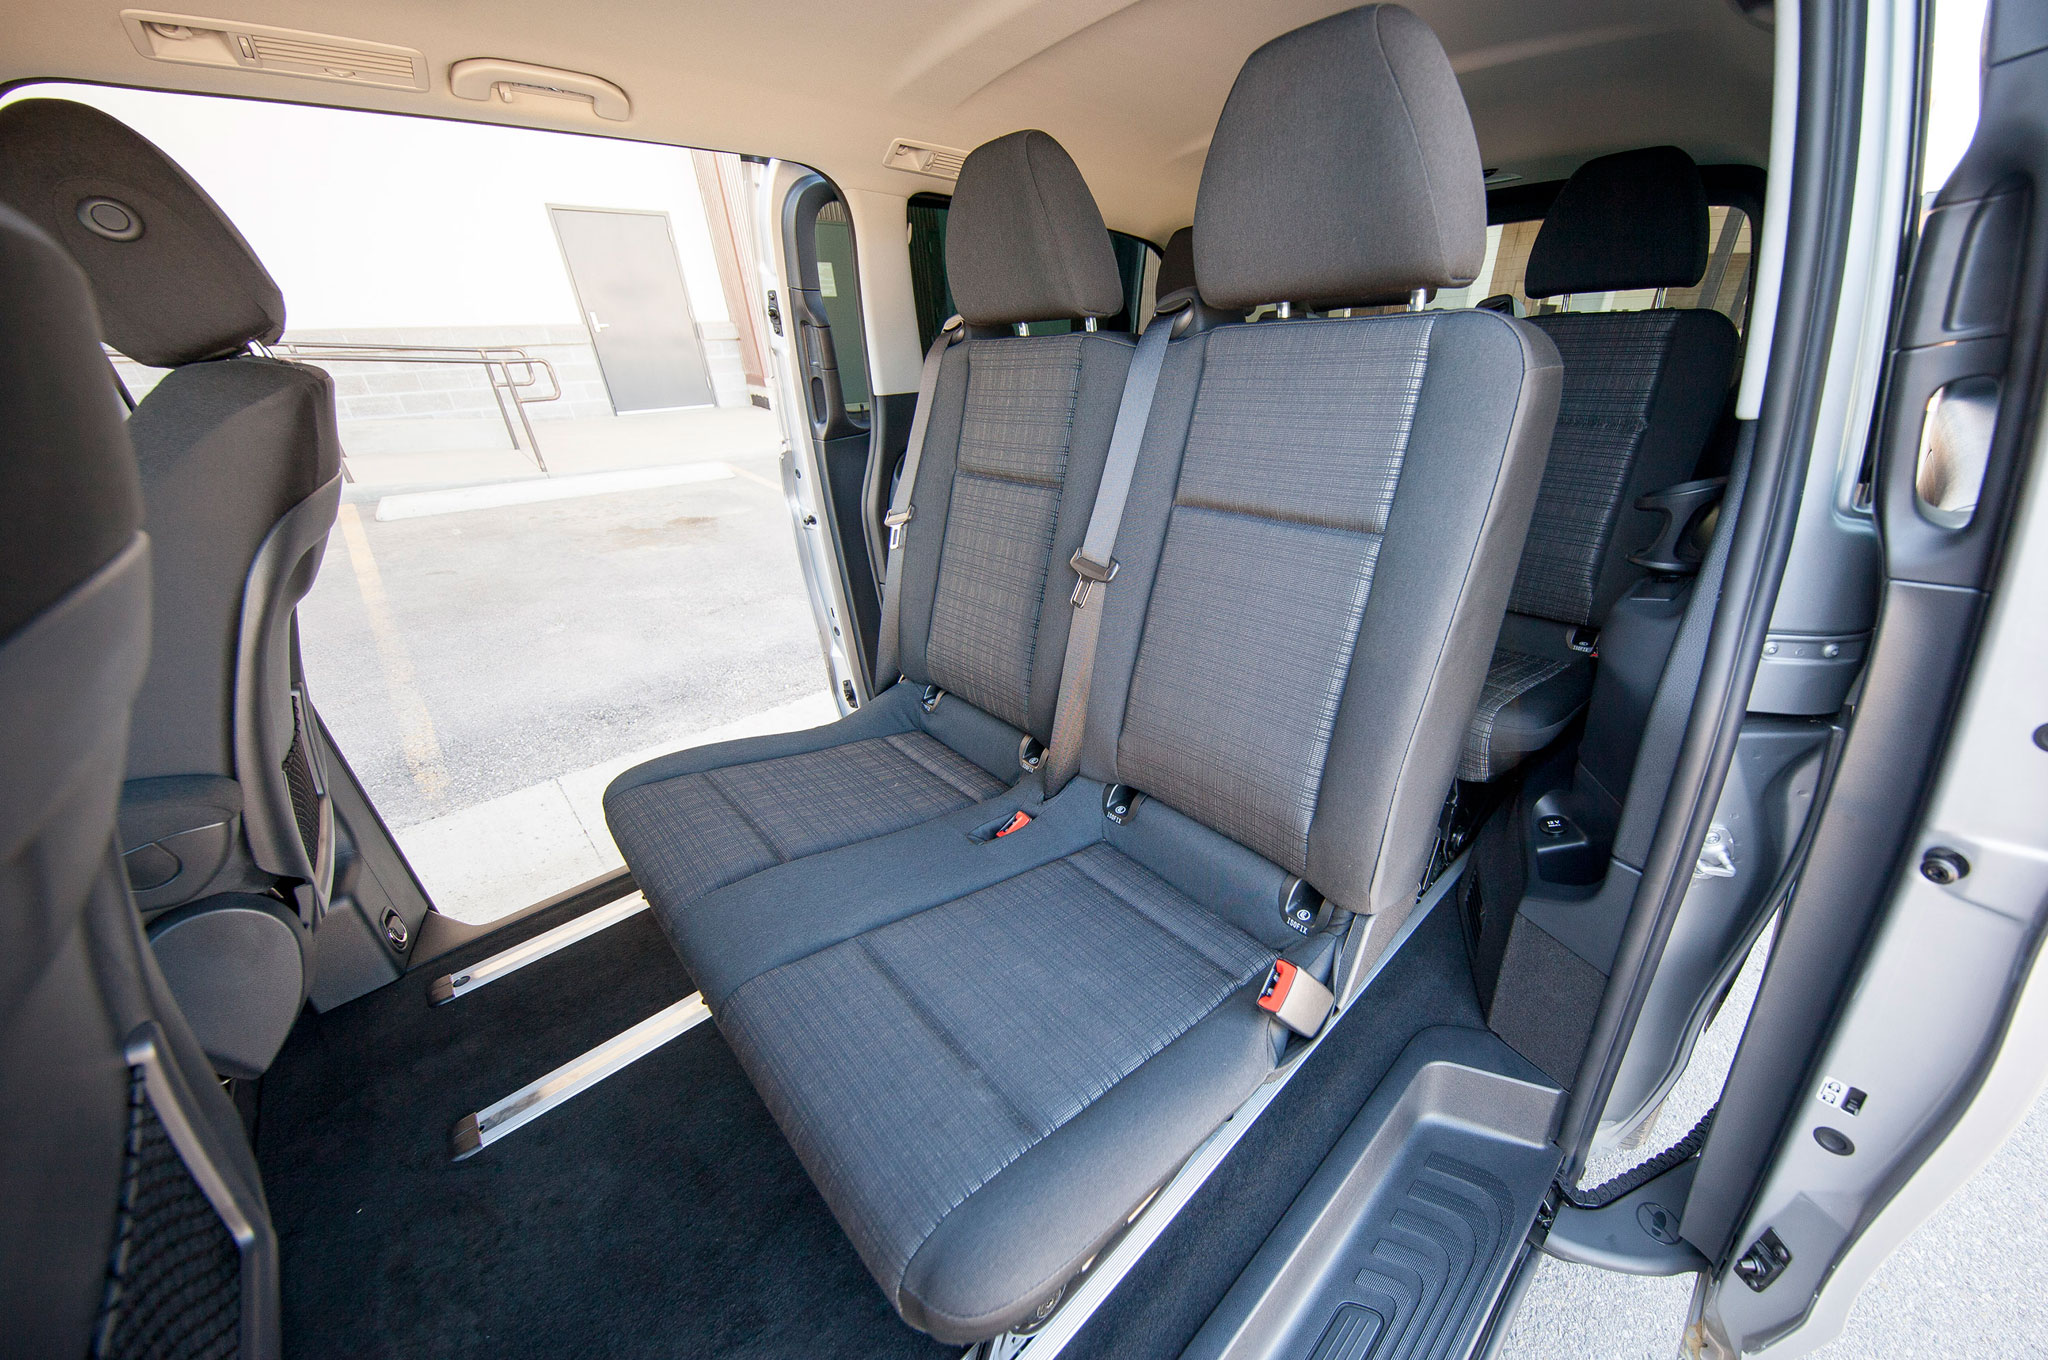 Mercedes Benz Metris Rear Seats moreover X furthermore Mercedes Benz Metris First Drive Driver Side Front View in addition Automotive Fuel Filter Being Replaced O X further Mercedes Benz Metris Pump Fill. on metris mercedes cargo van 2016